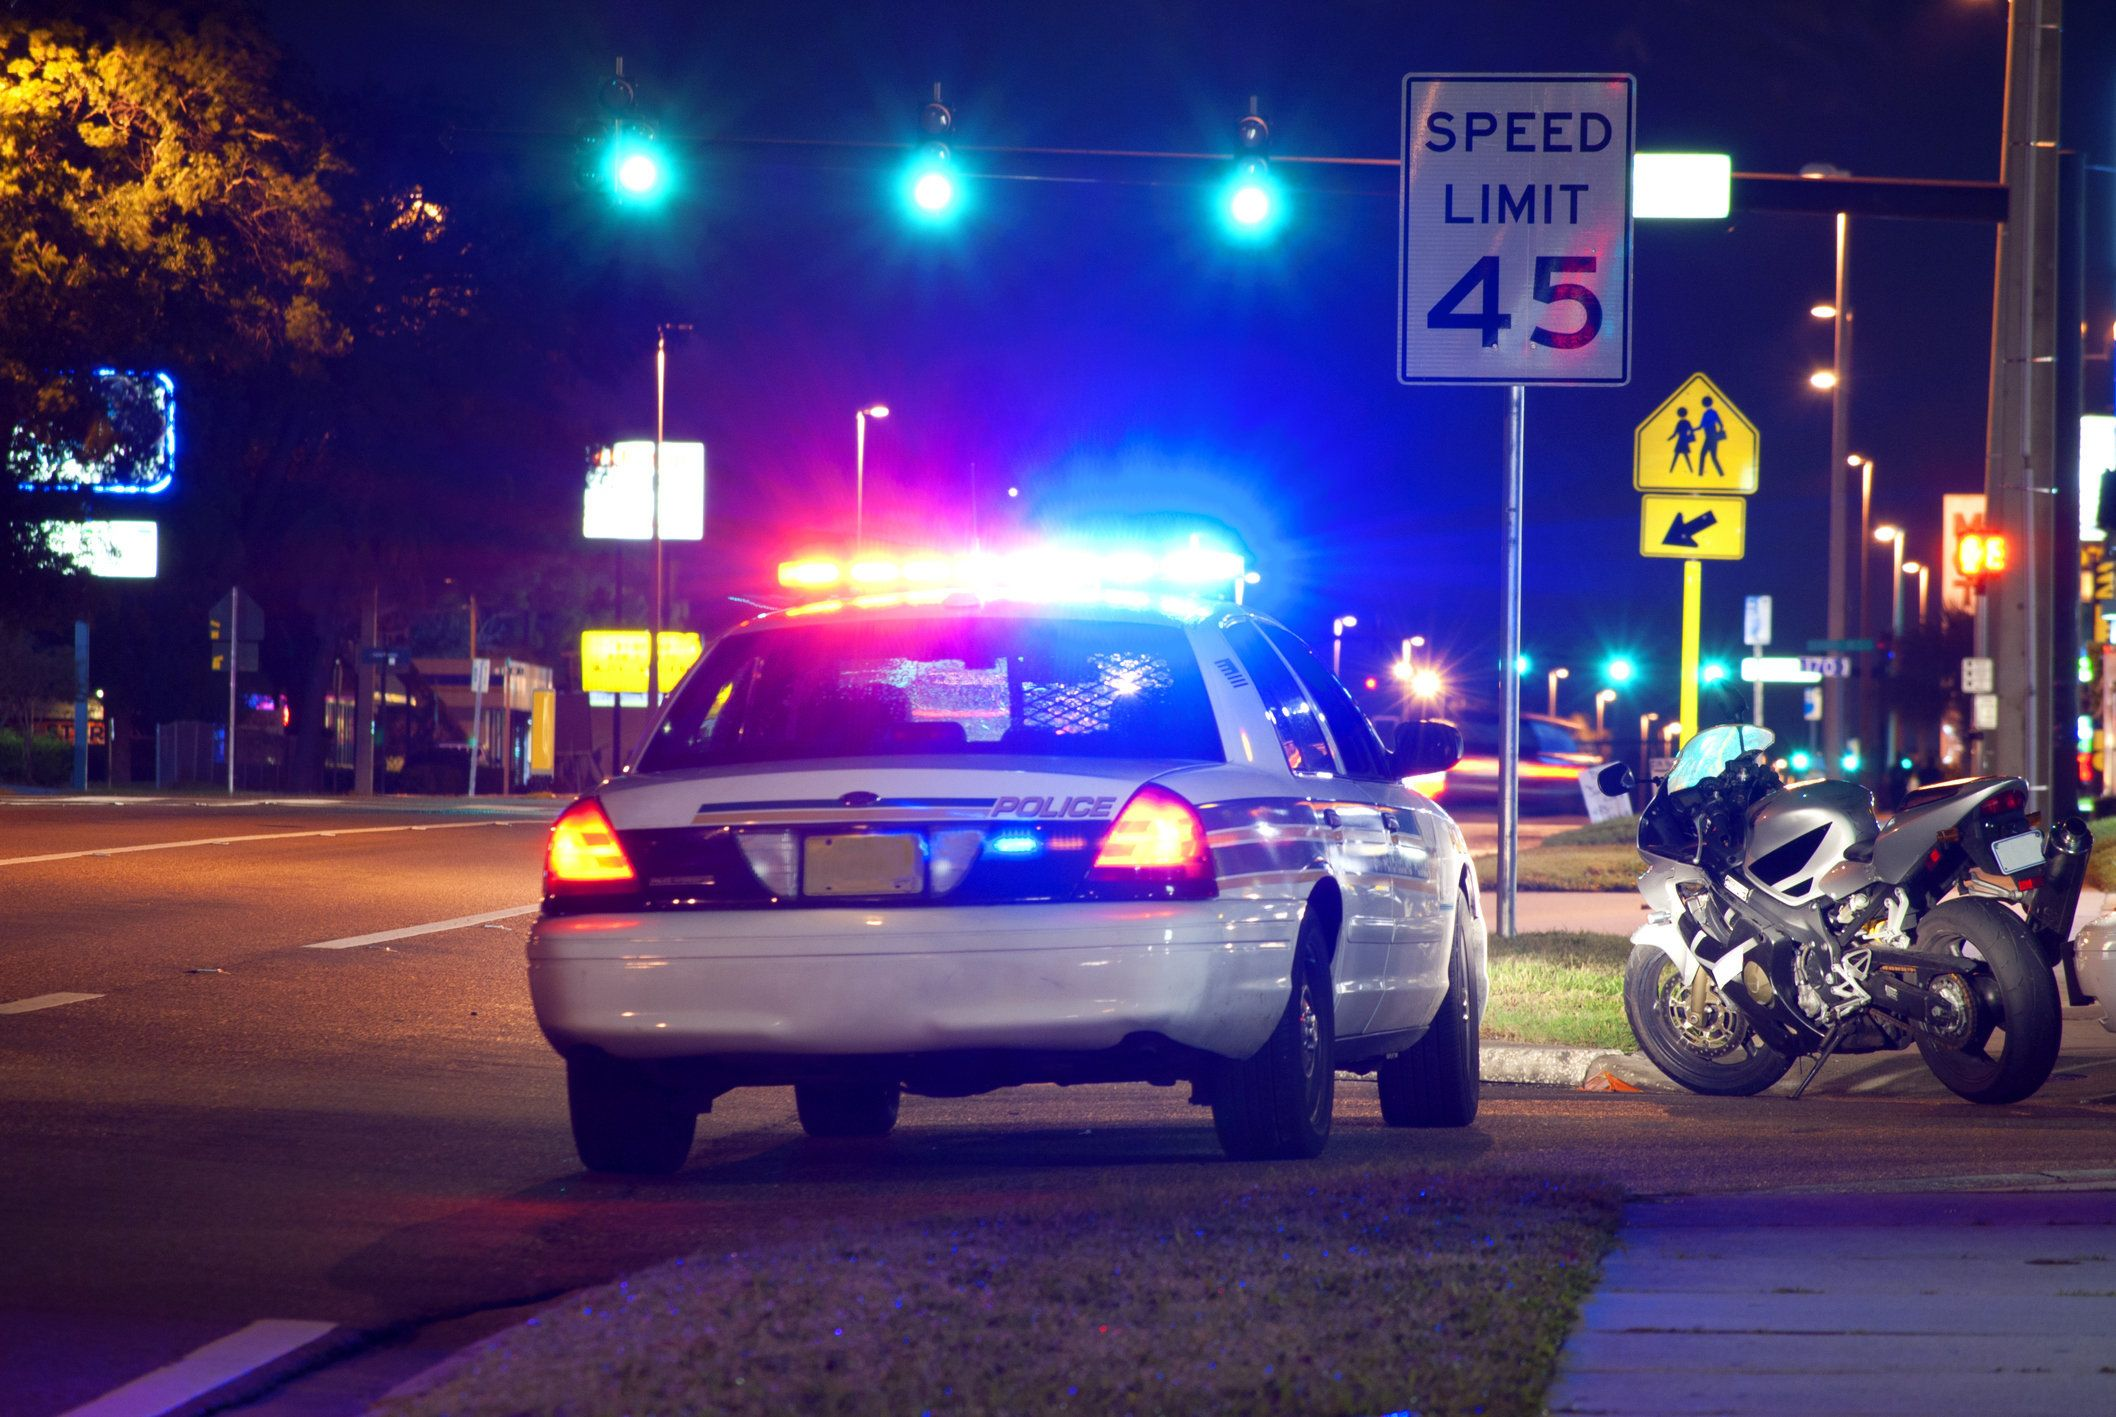 Motorcycle pulled over at night for a police traffic stop.